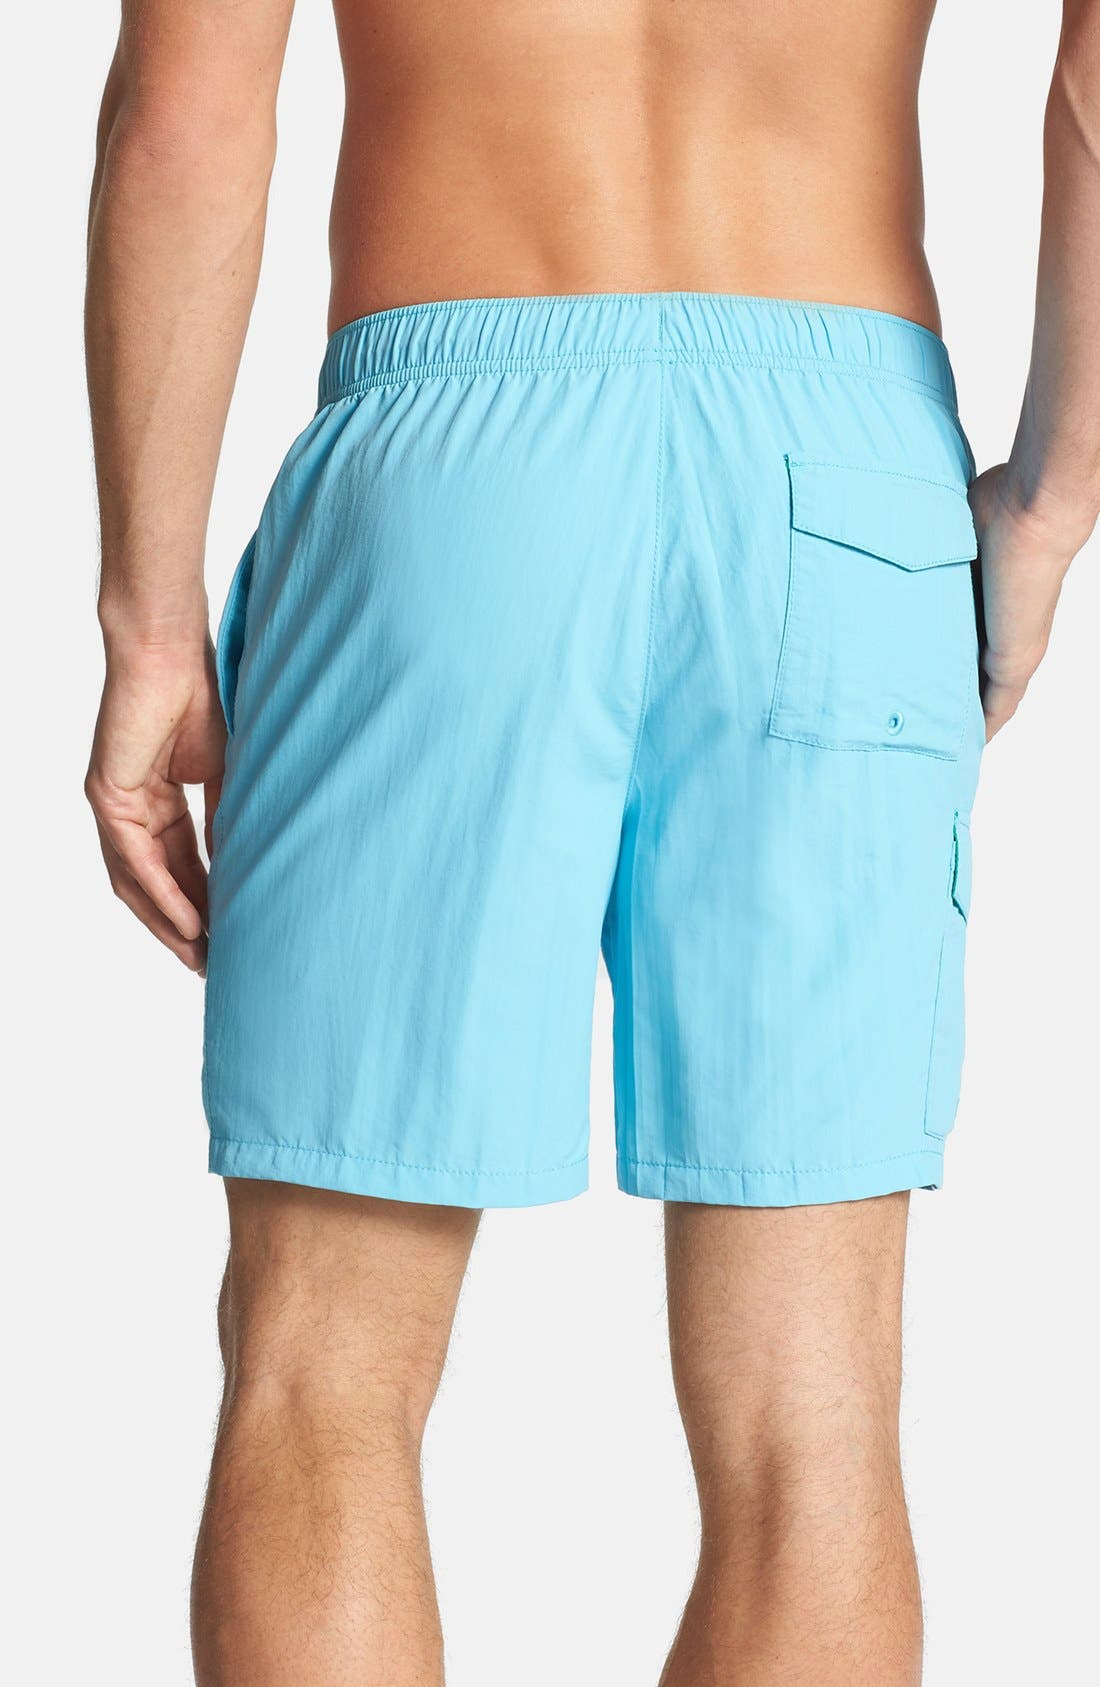 Naples Happy Go Cargo Swim Trunks,                             Alternate thumbnail 11, color,                             400